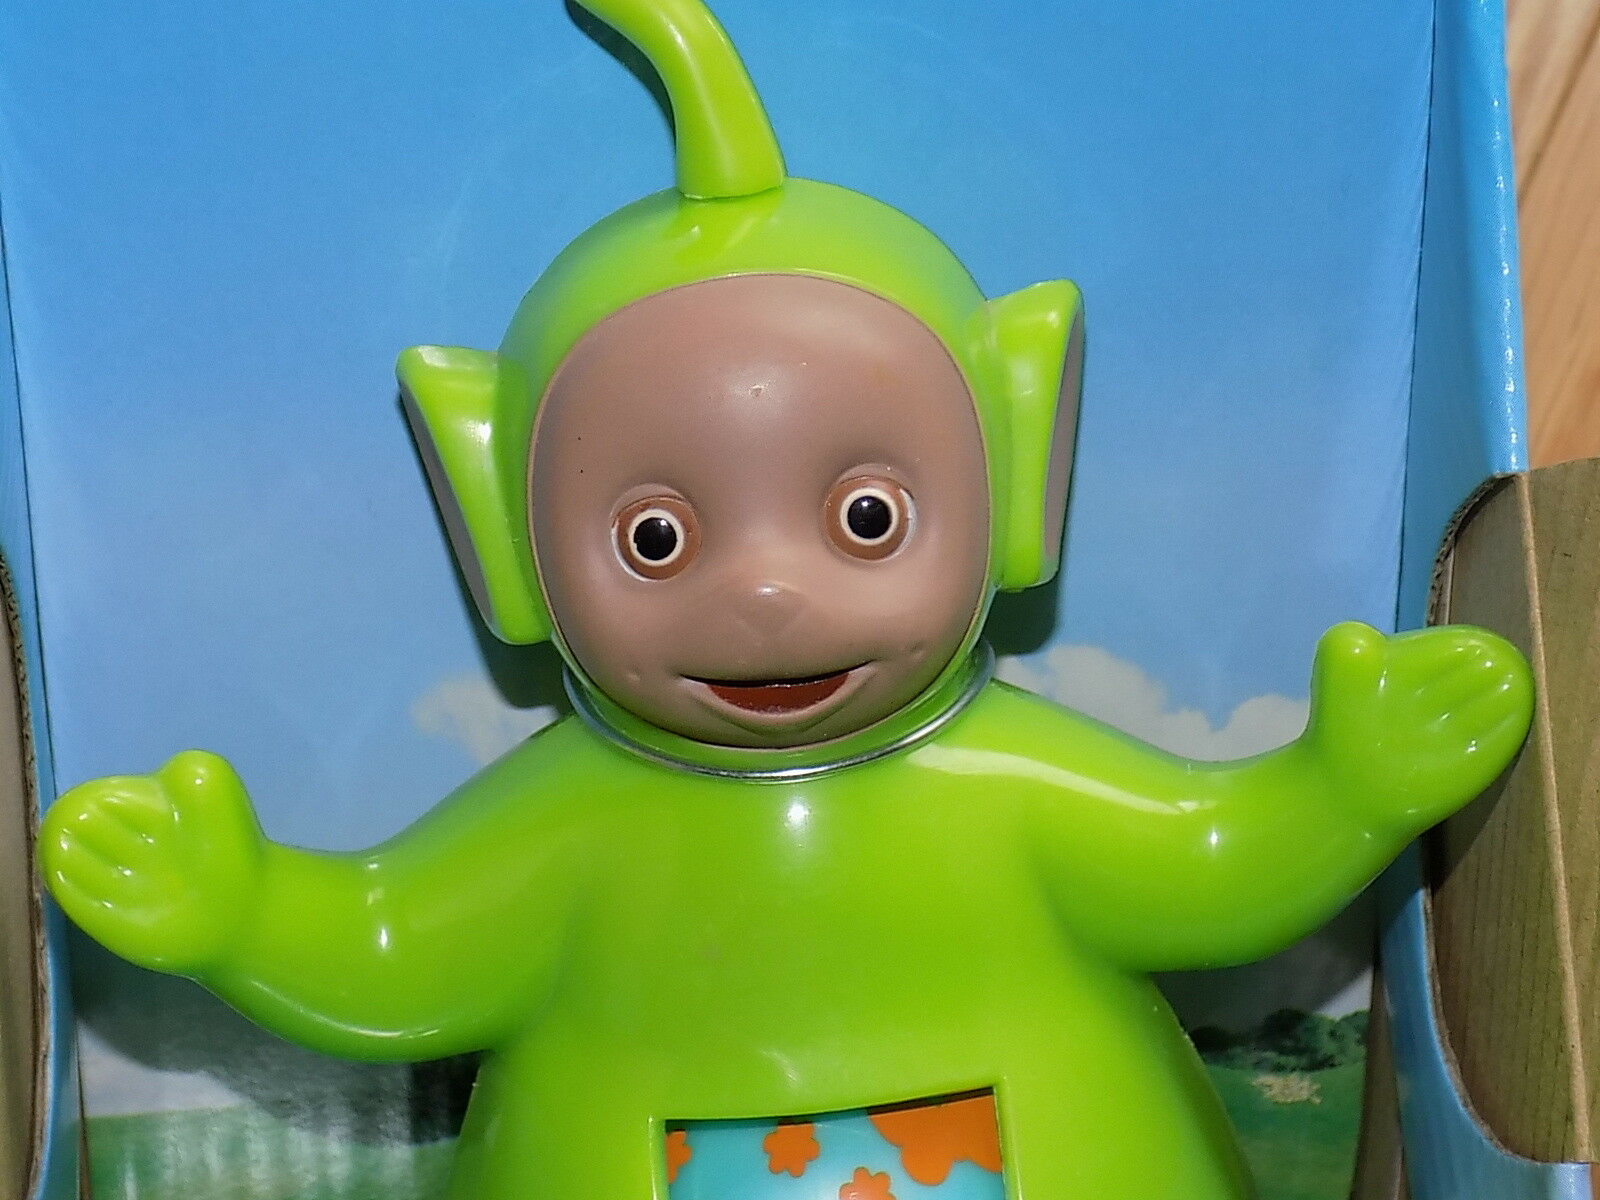 Teletubbies Dipsy Toddlin Toddlin Toddlin Teletubby Playskool 1998 roll along daycare toddlers 4d2199